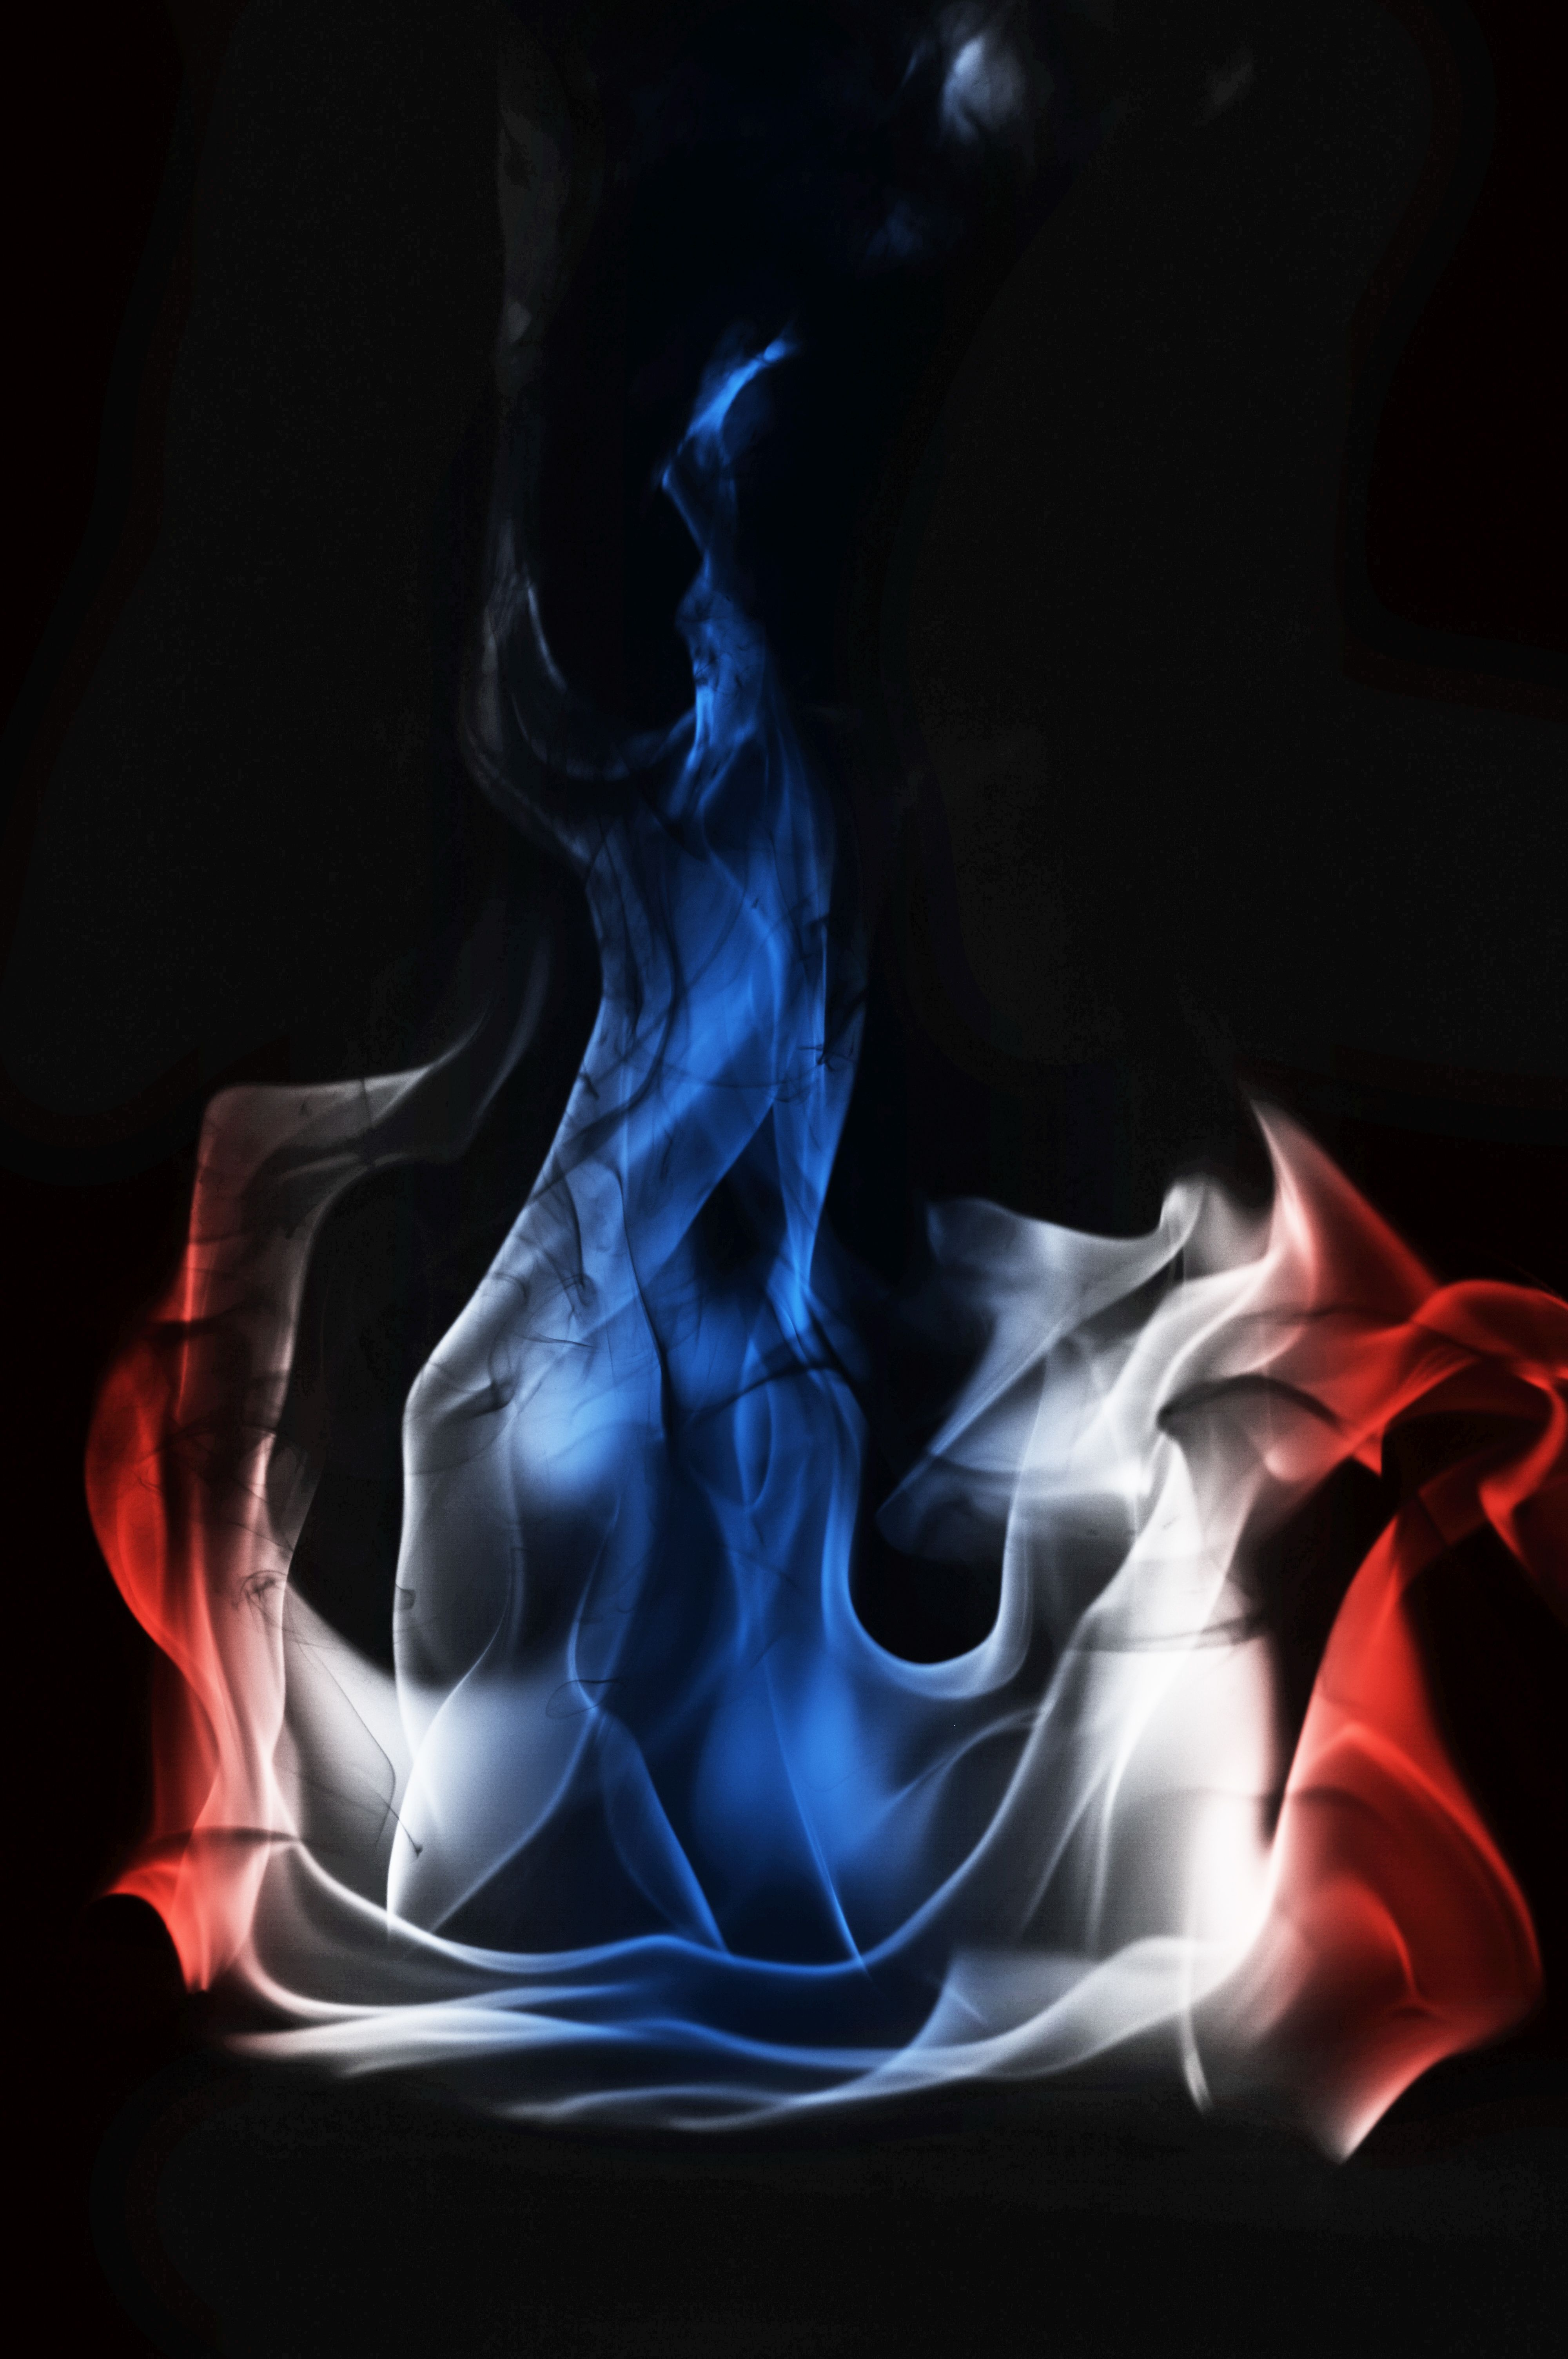 Multi Color Fire Flame Abstract On Black Background A Mystic Colorful Smoke Thai Flag Colored Smoke Black Backgrounds Texture Images